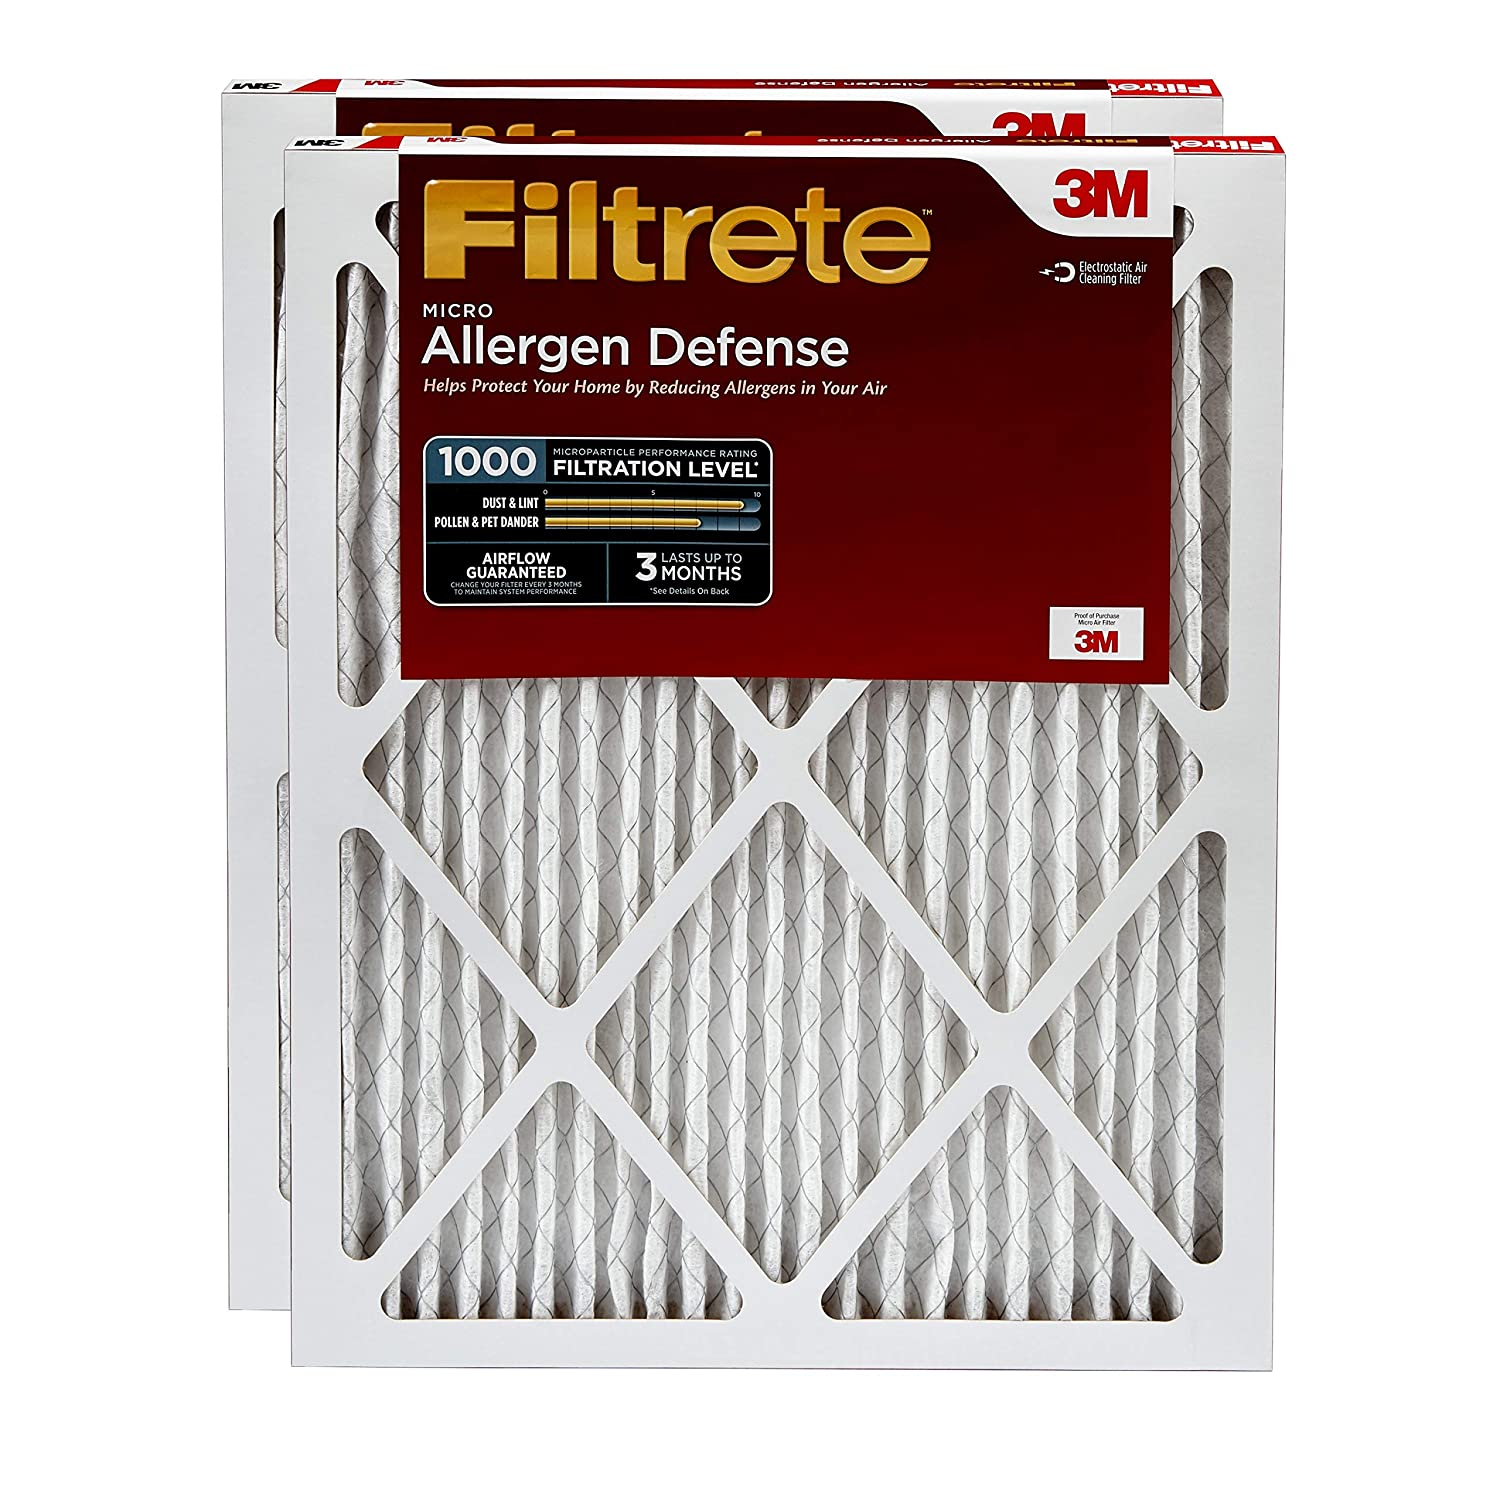 Filtrete 20x25x1, AC Furnace Air Filter, MPR 1000,